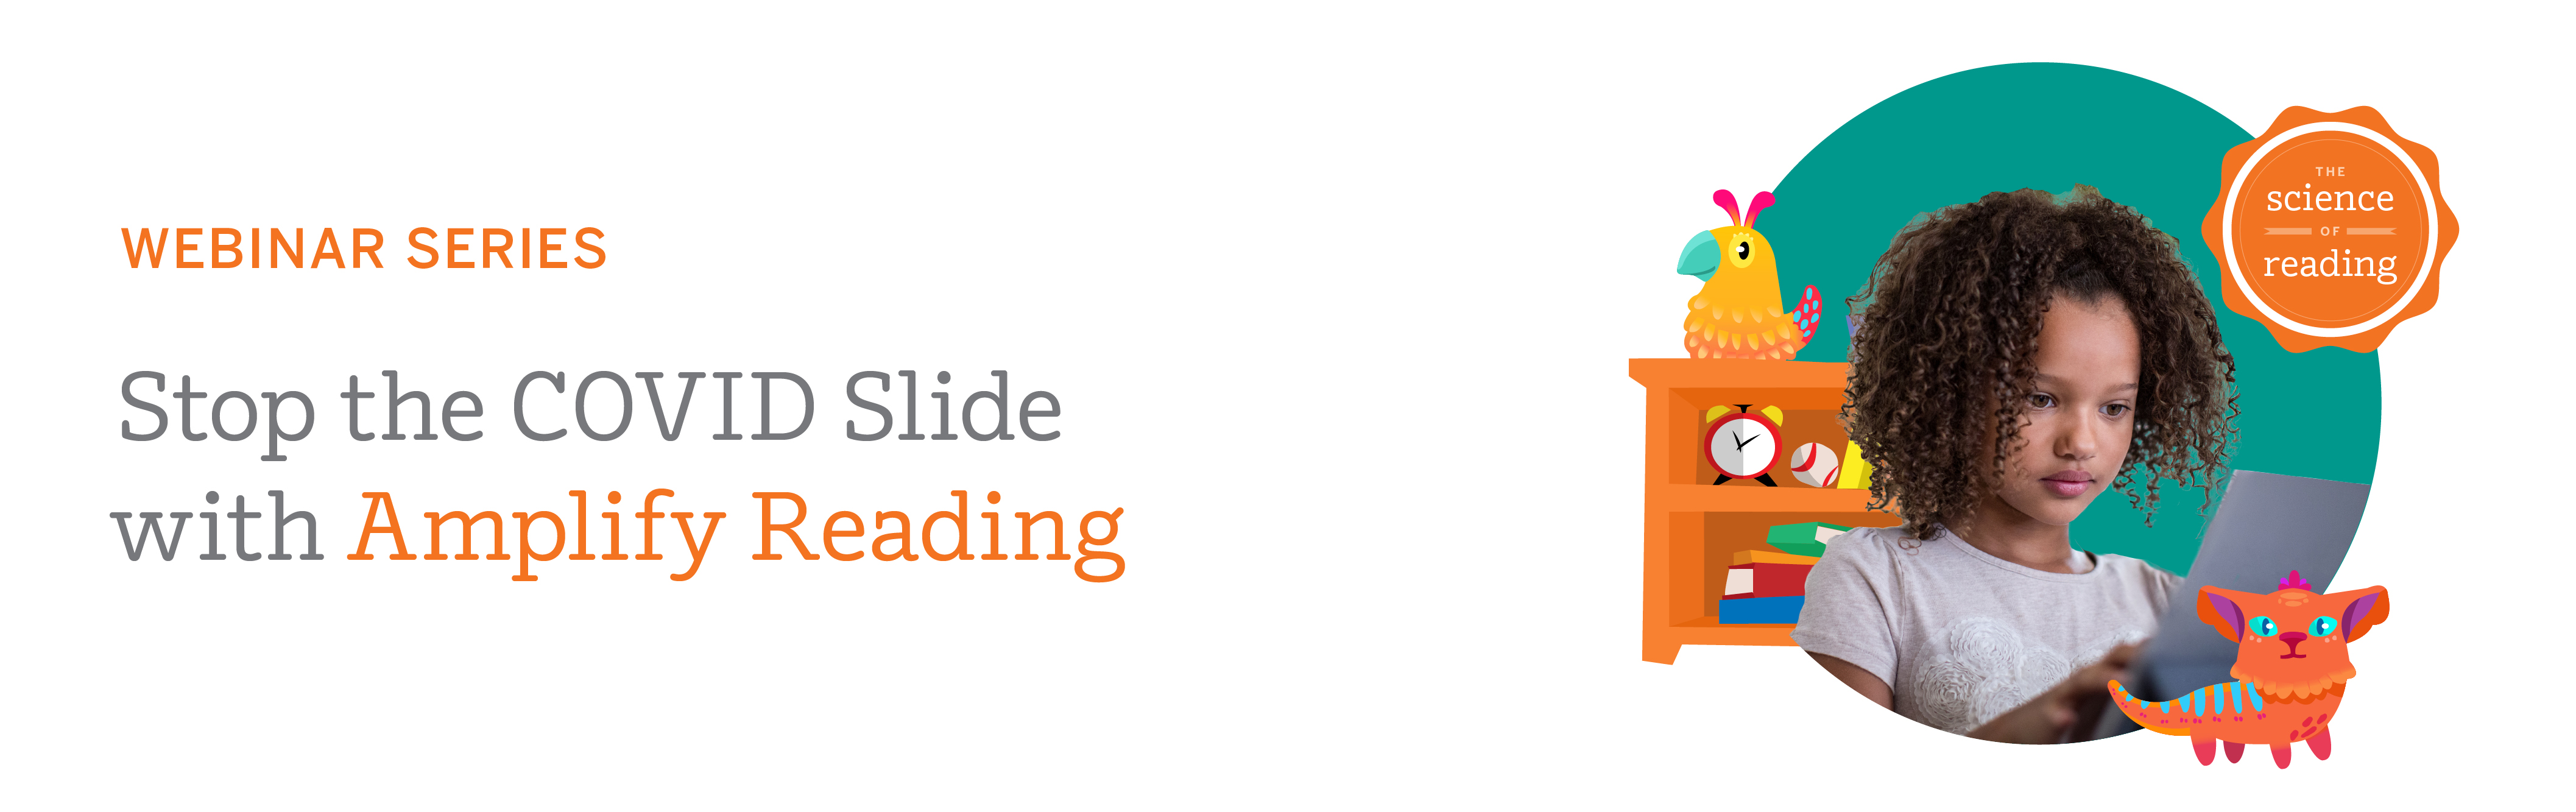 Webinar series: Stop the COVID slide with Amplify Reading